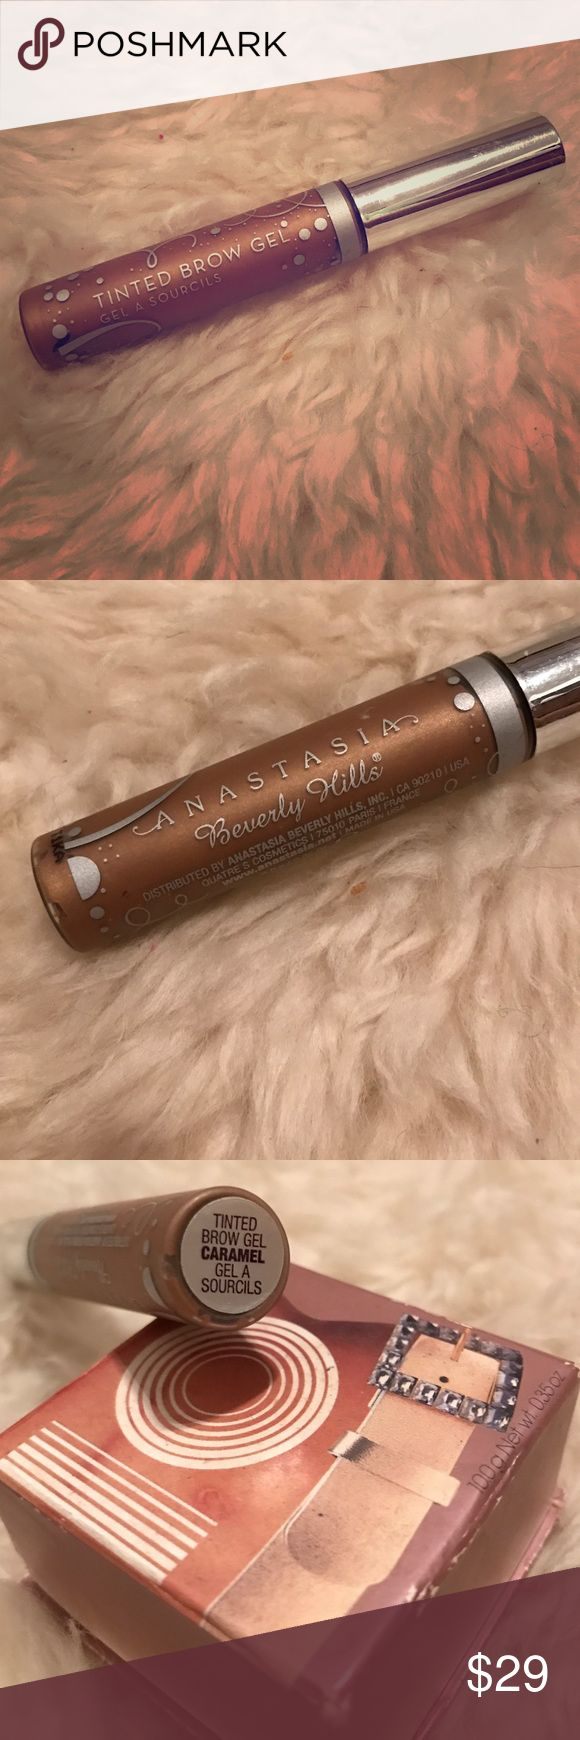 Anastasia Tinted Brow Gel New✨ Caramel This item does not come with the original packaging❤️ Benefit Makeup Eyebrow Filler